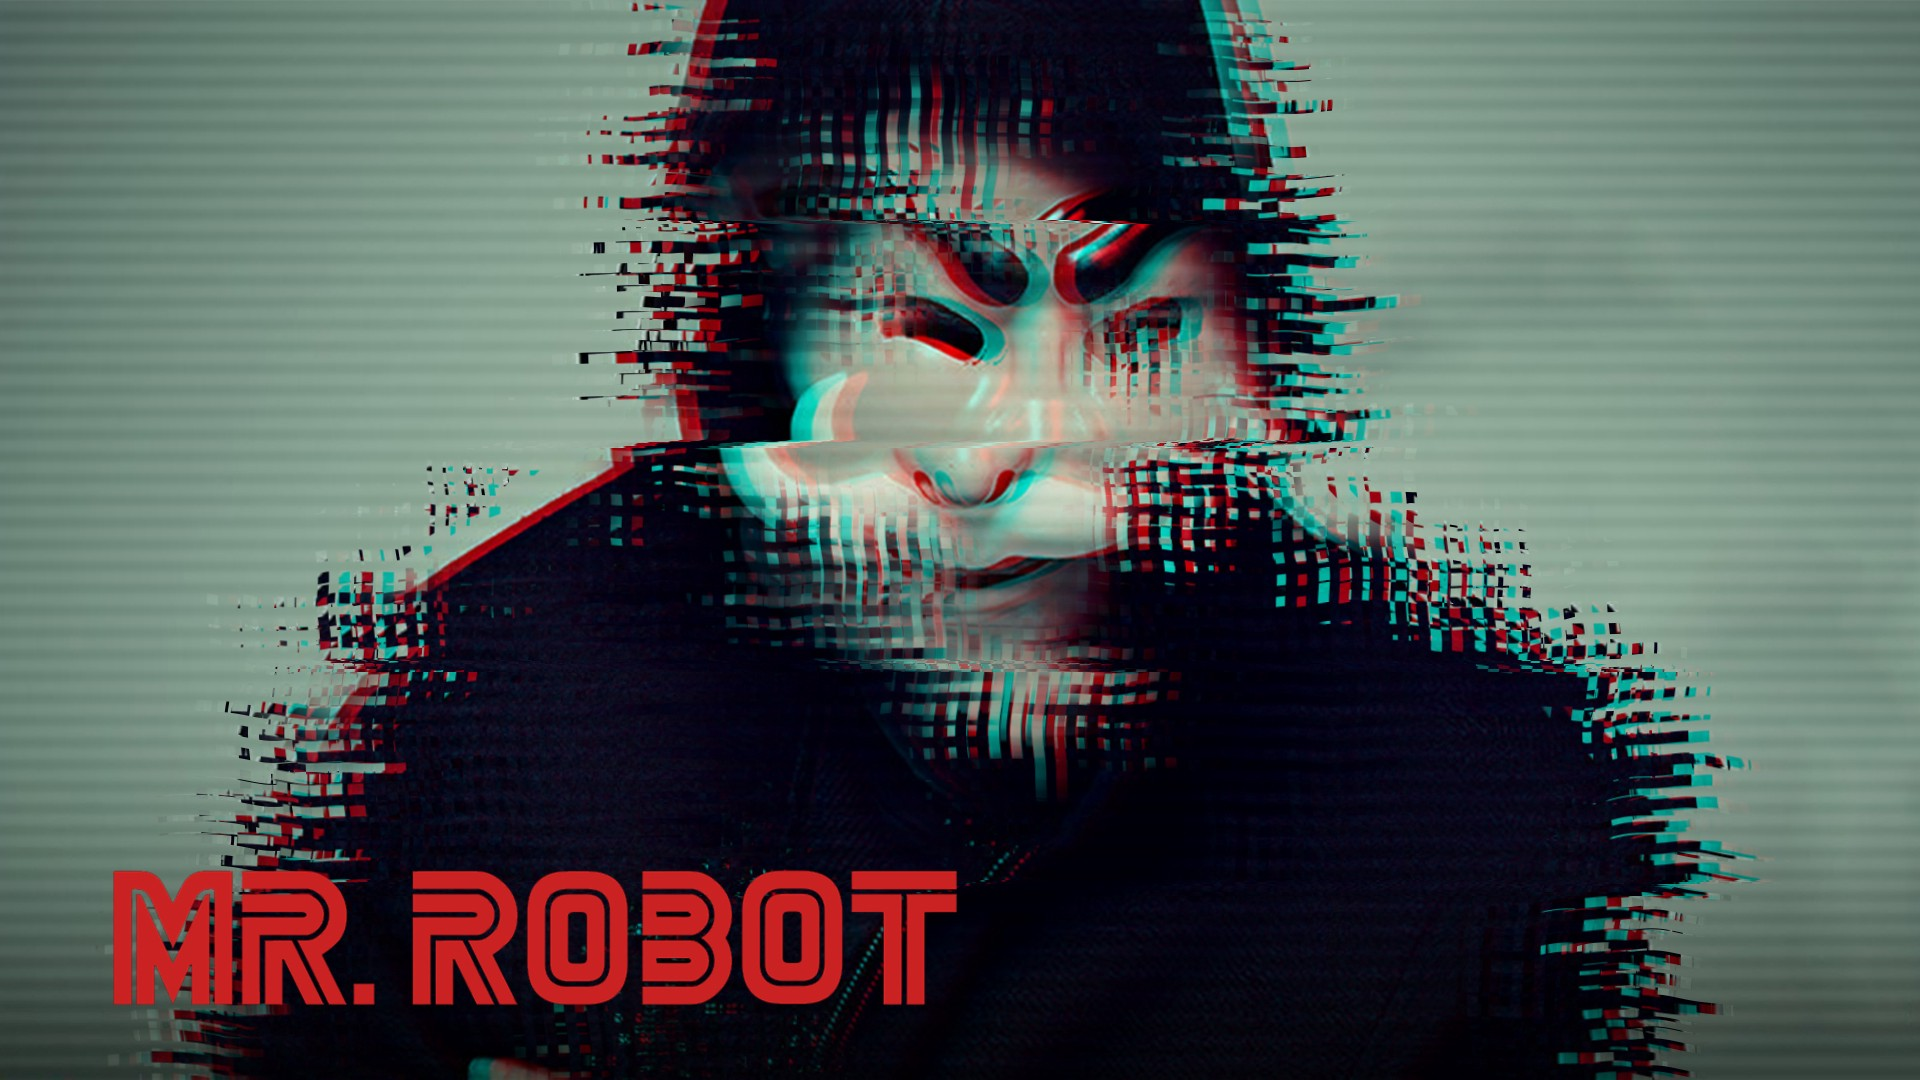 Hacking MR ROBOT Could China Really Annex The Democratic Republic Of Congo